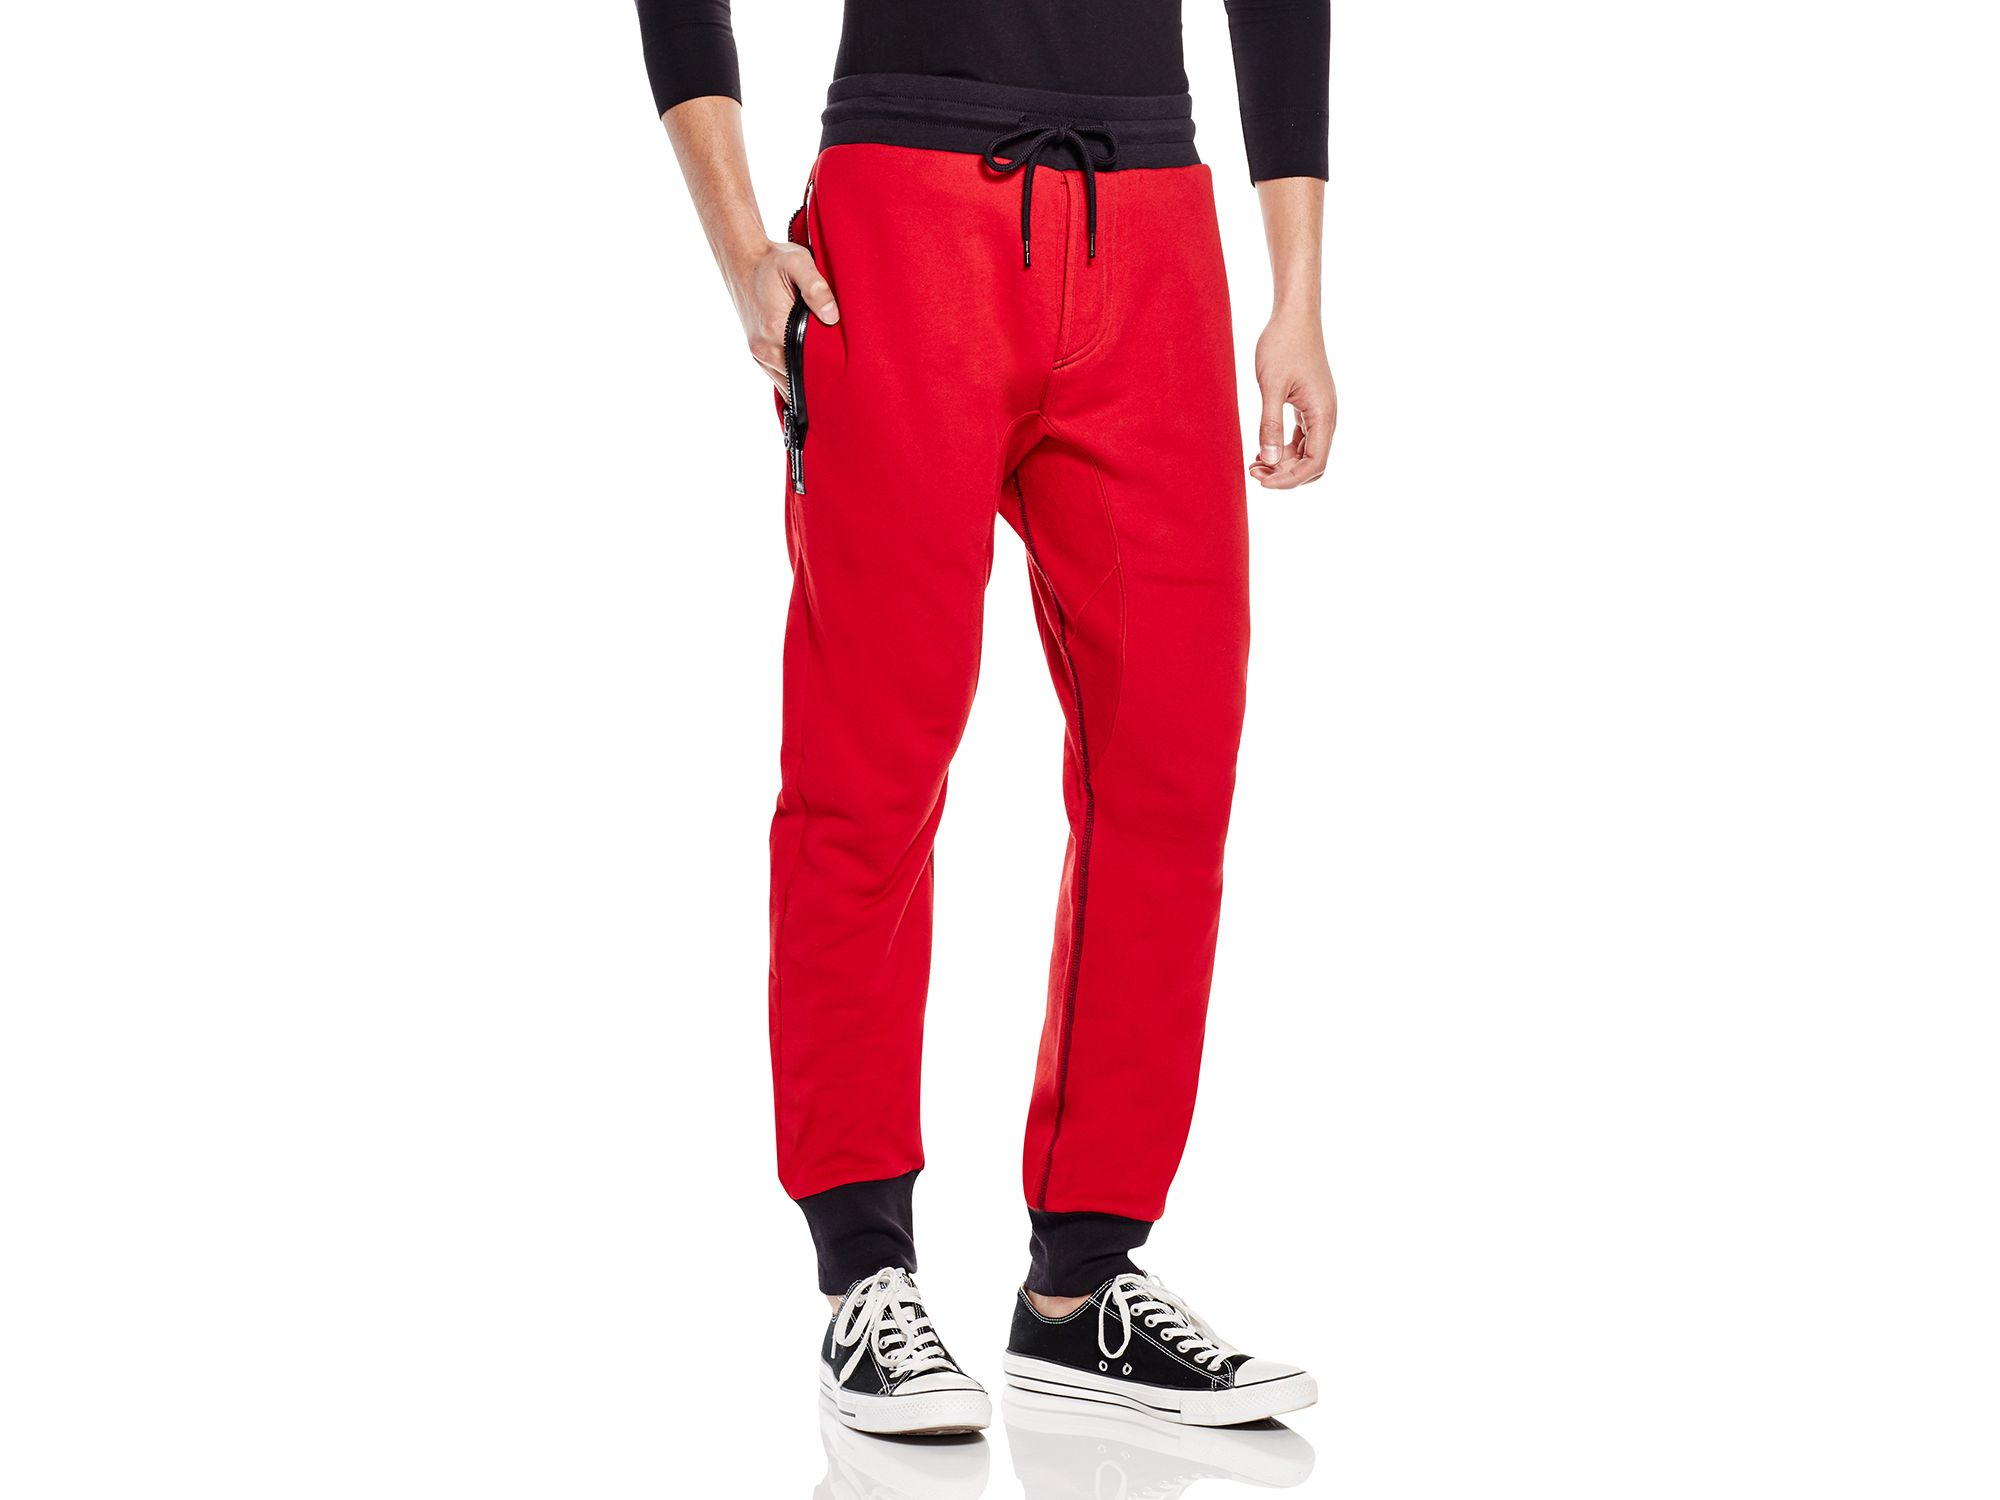 Lyst - True Religion Terry Exposed Zip Sweatpants in Red for Men 80727a710a32